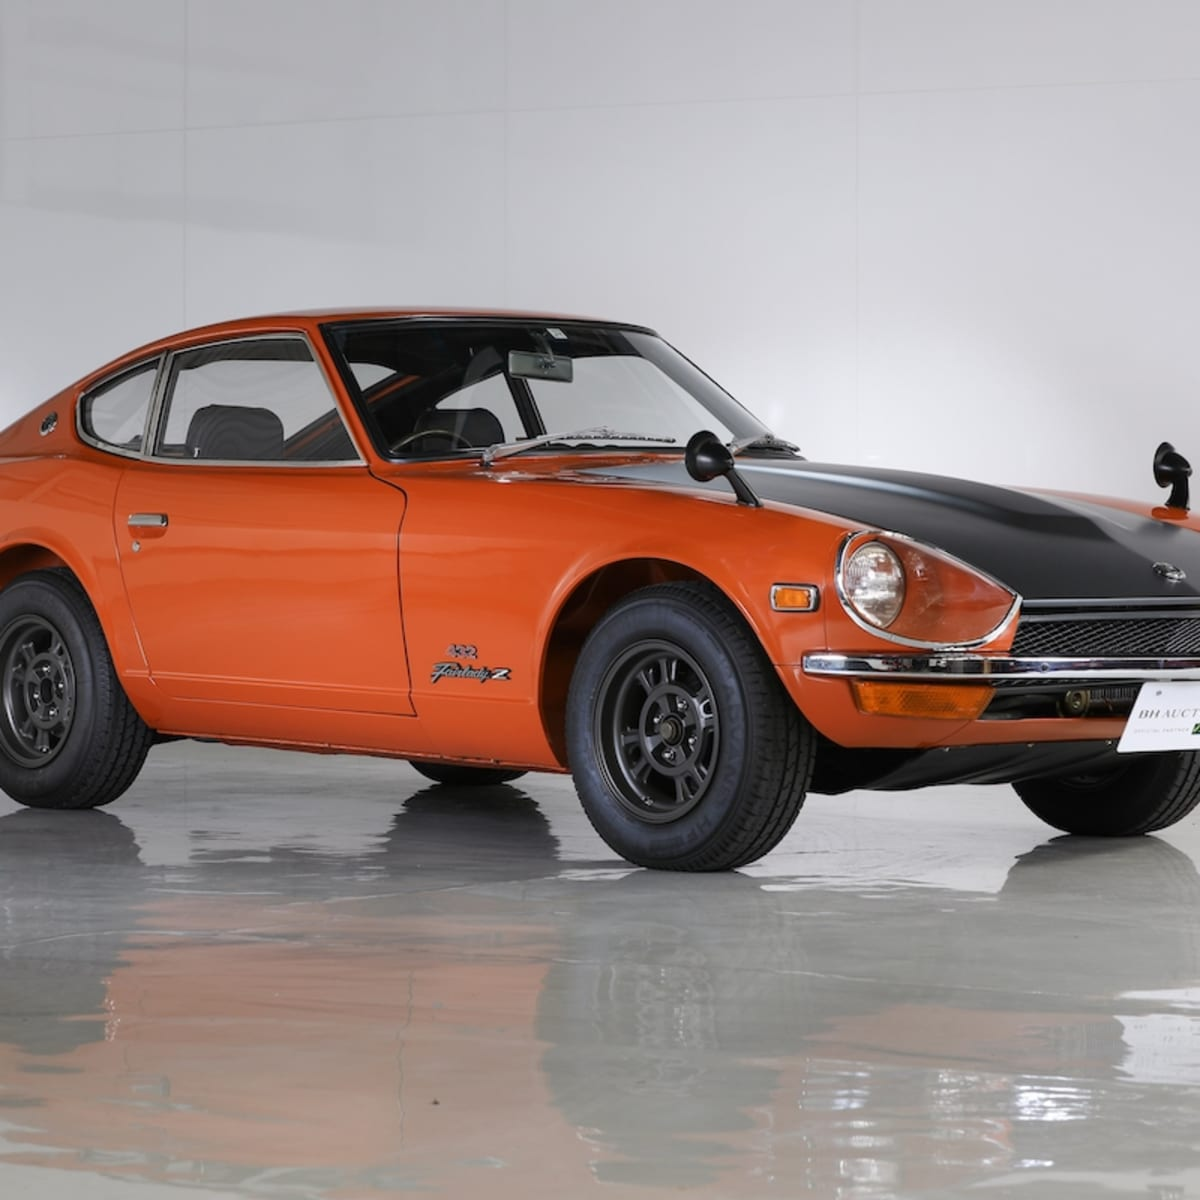 Old Datsun Sells For 1 1 Million Breaks Auction Records In Japan Caradvice